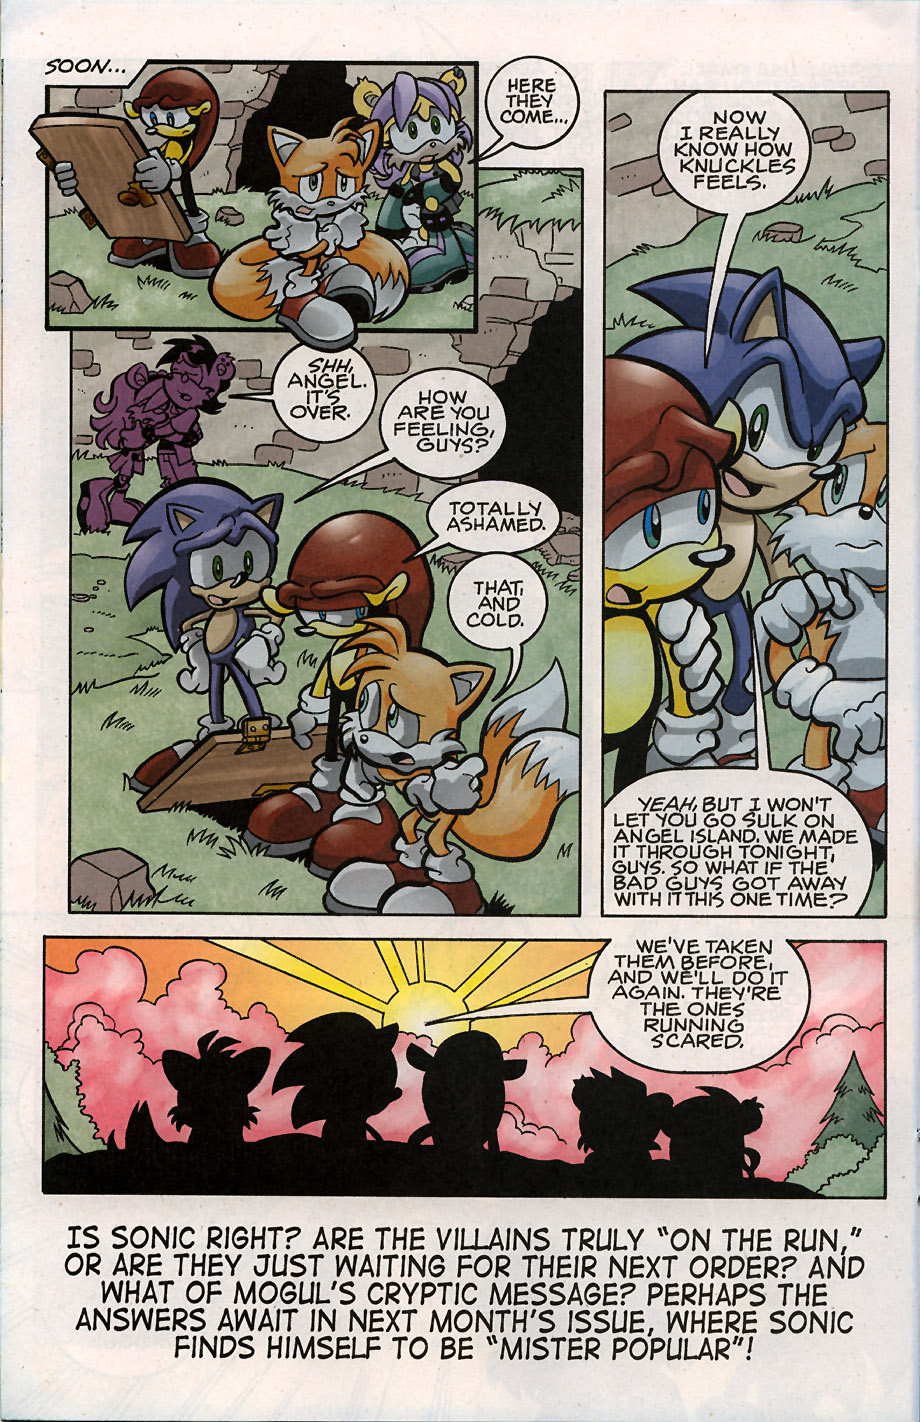 Sonic - Archie Adventure Series May 2008 Page 14